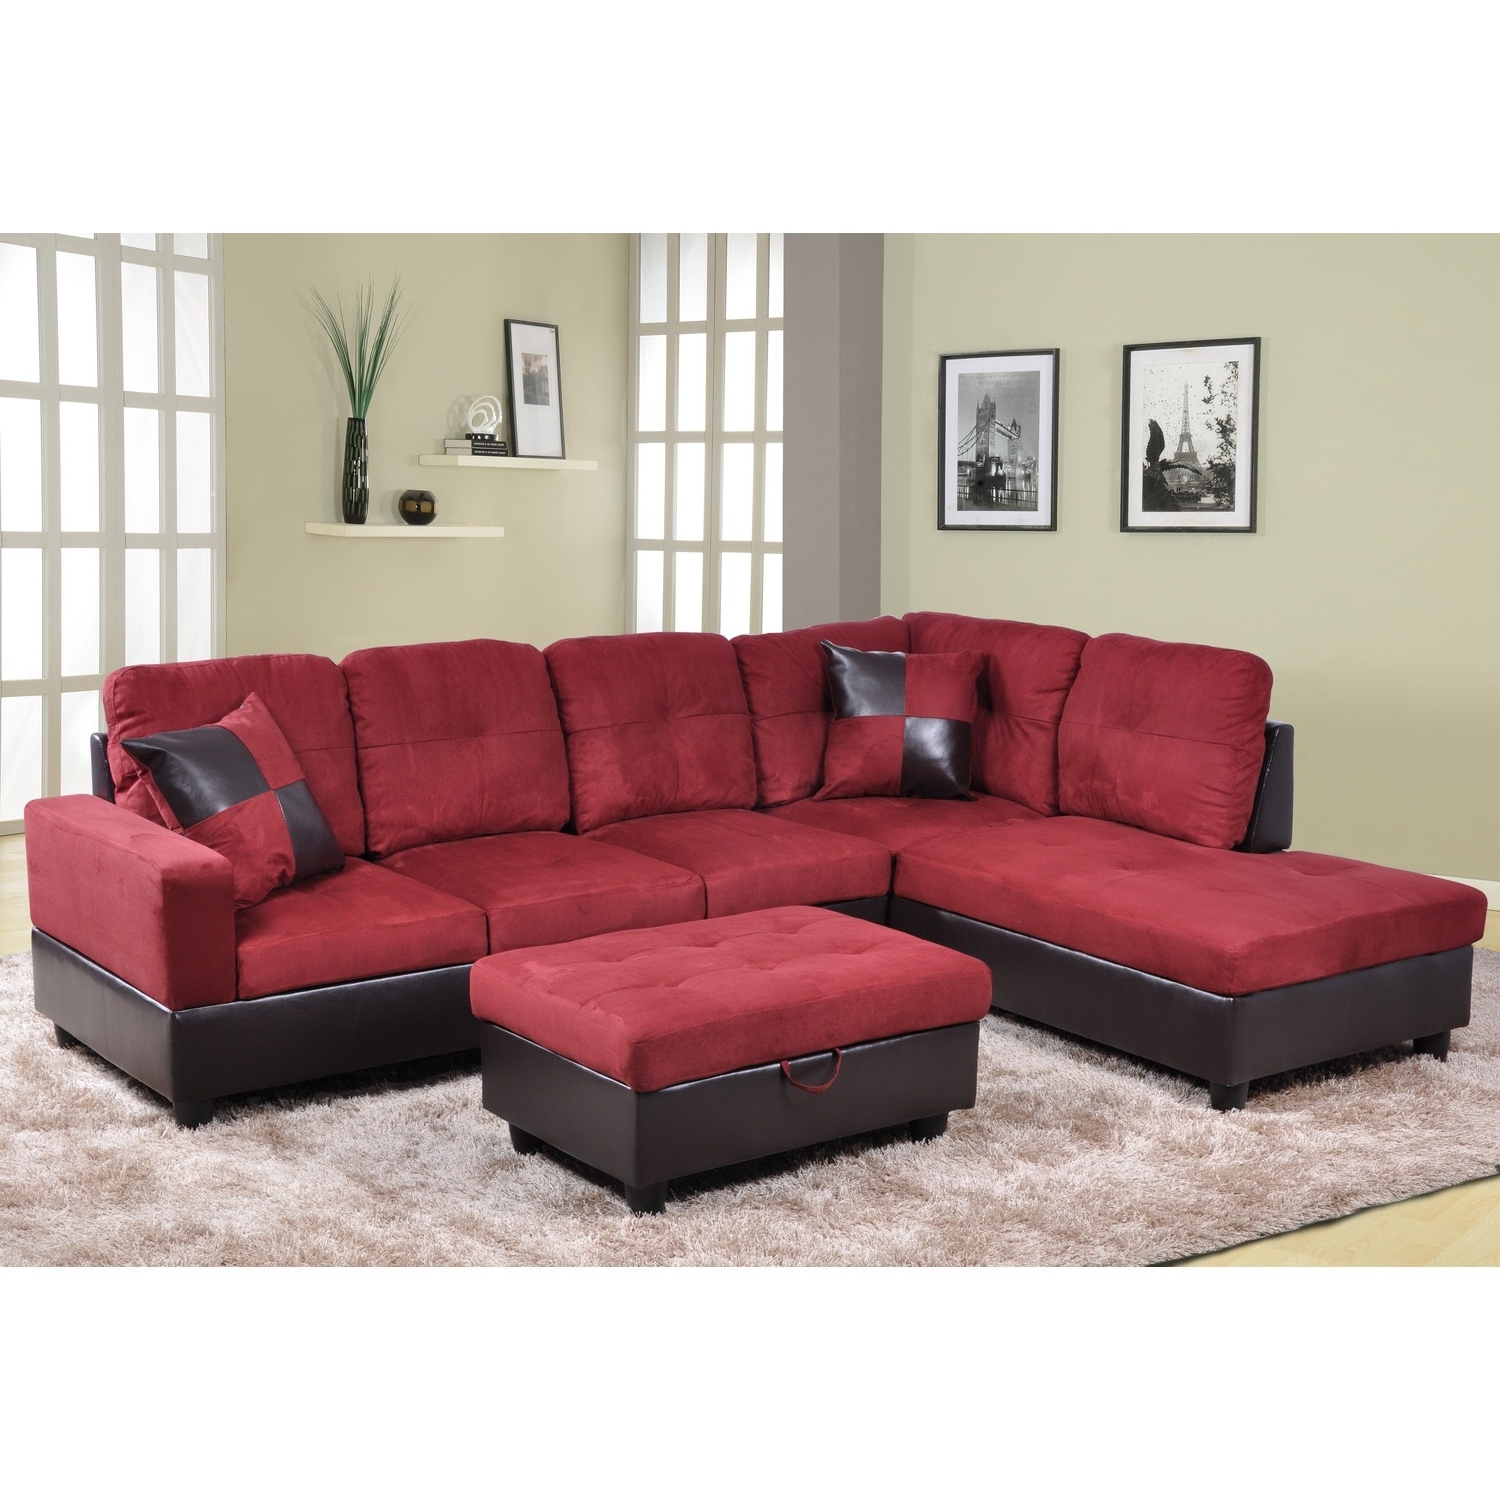 Famous Sears Sectional Sofas With Regard To Cheap Sectional Sofas For Sale Inspirational Furniture Sears Sofa (View 3 of 15)